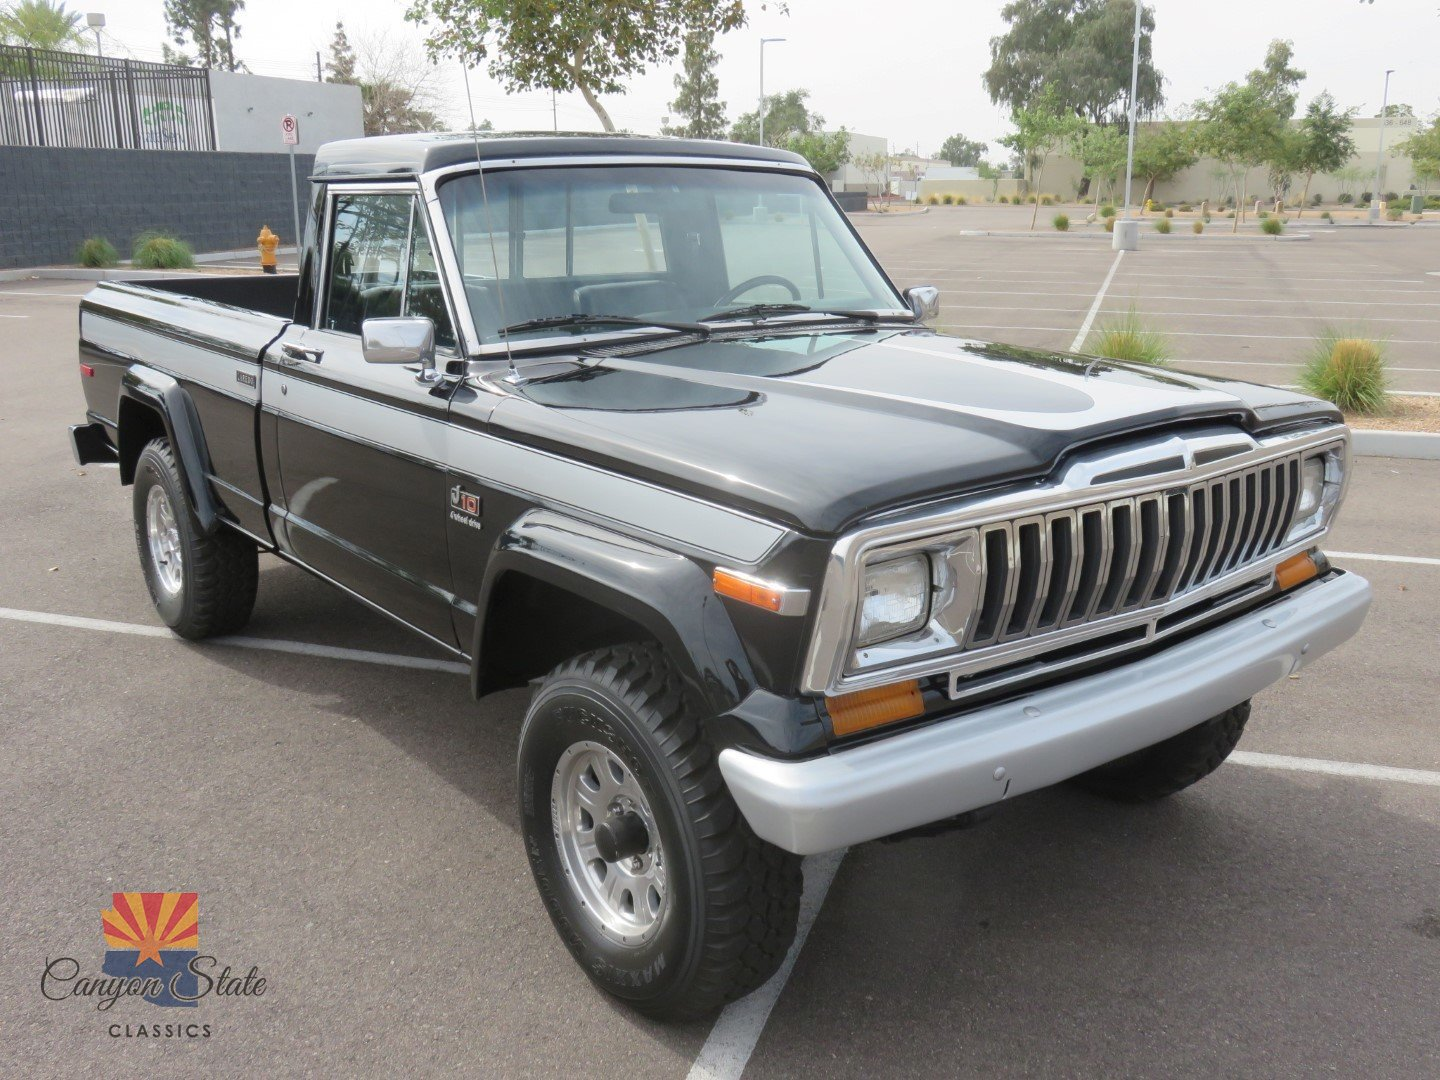 1984 Jeep Pickup 4WD J10 Laredo for sale 80674  MCG